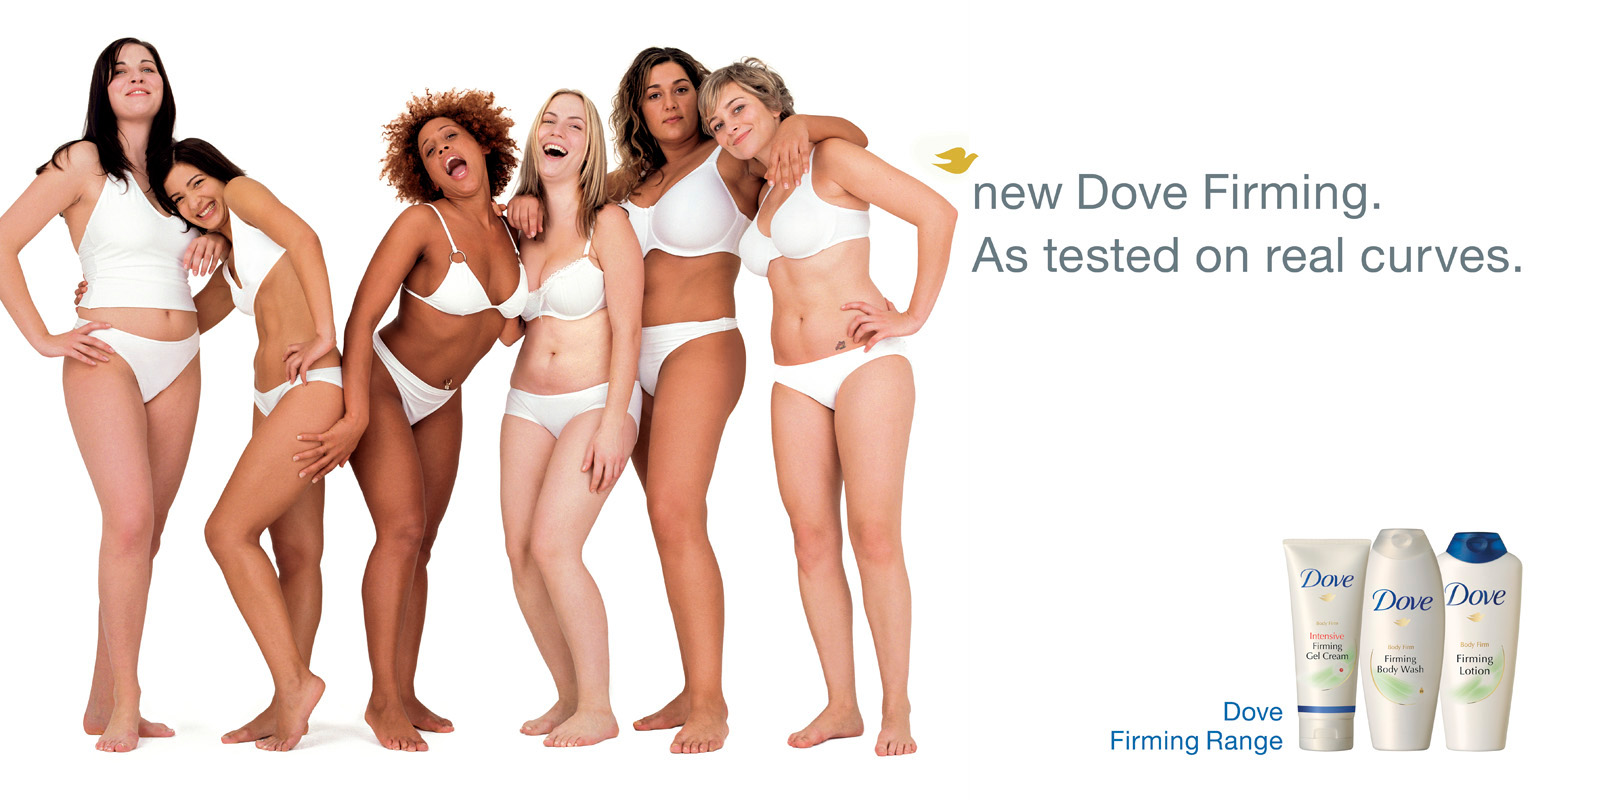 Dove Firming Tested on Real Curves - The Inspiration Room